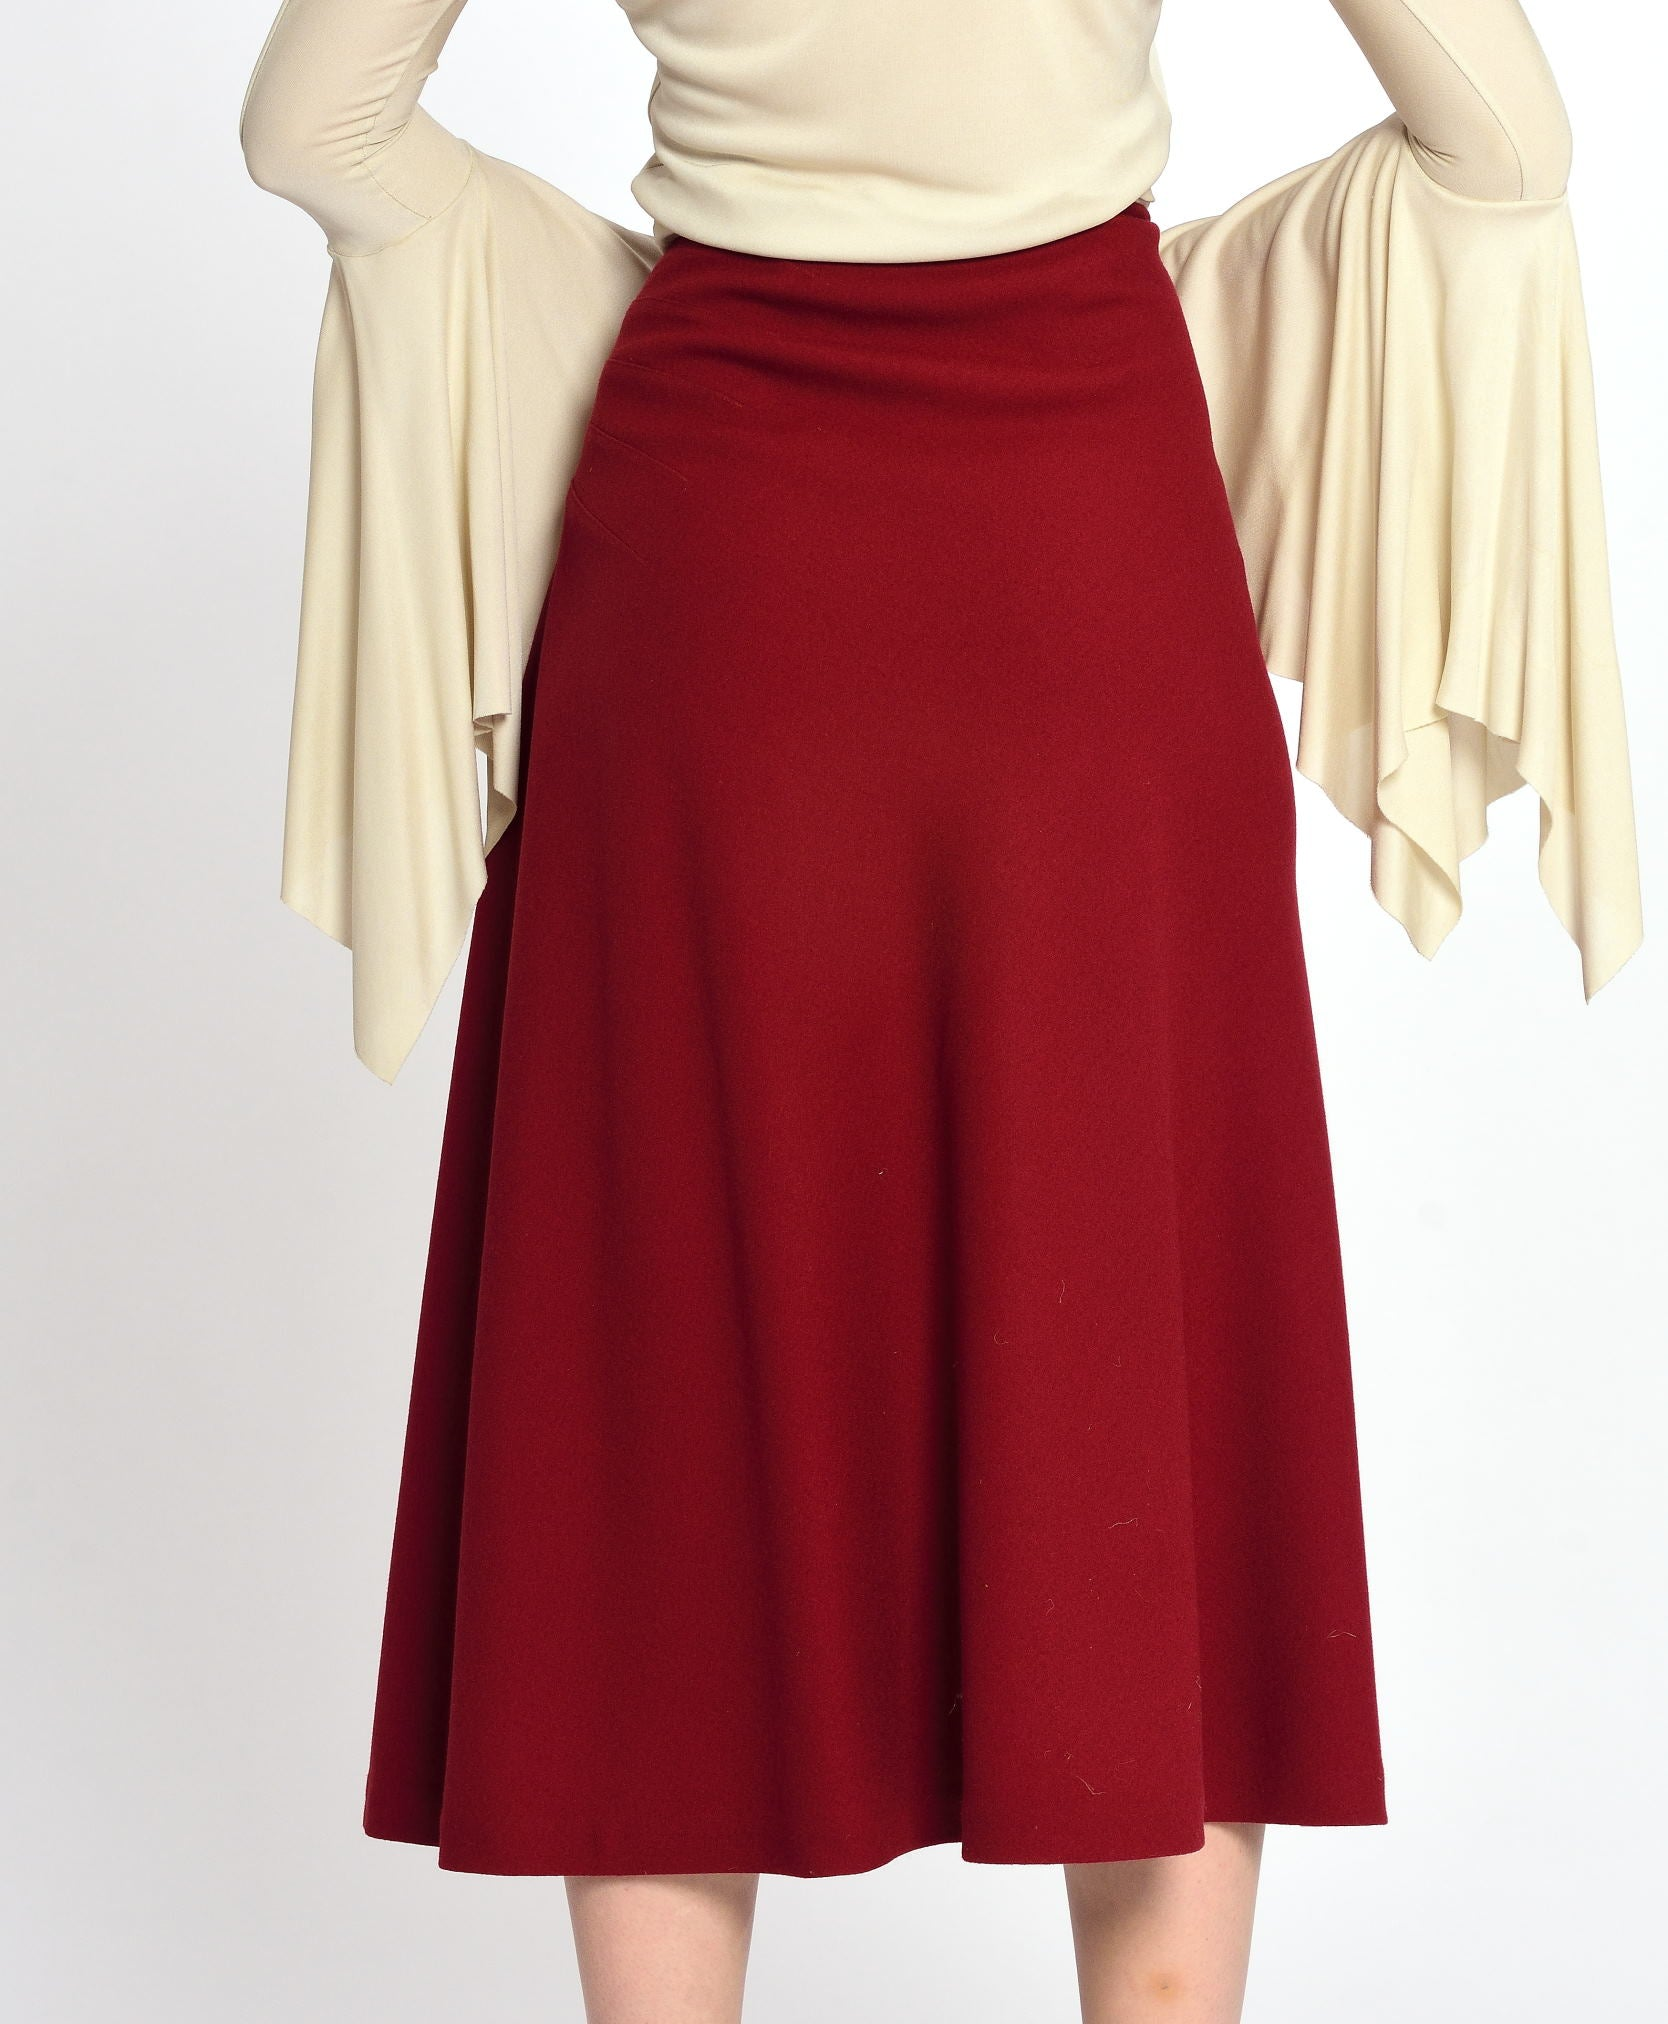 ALAÏA Red Midi Skirt